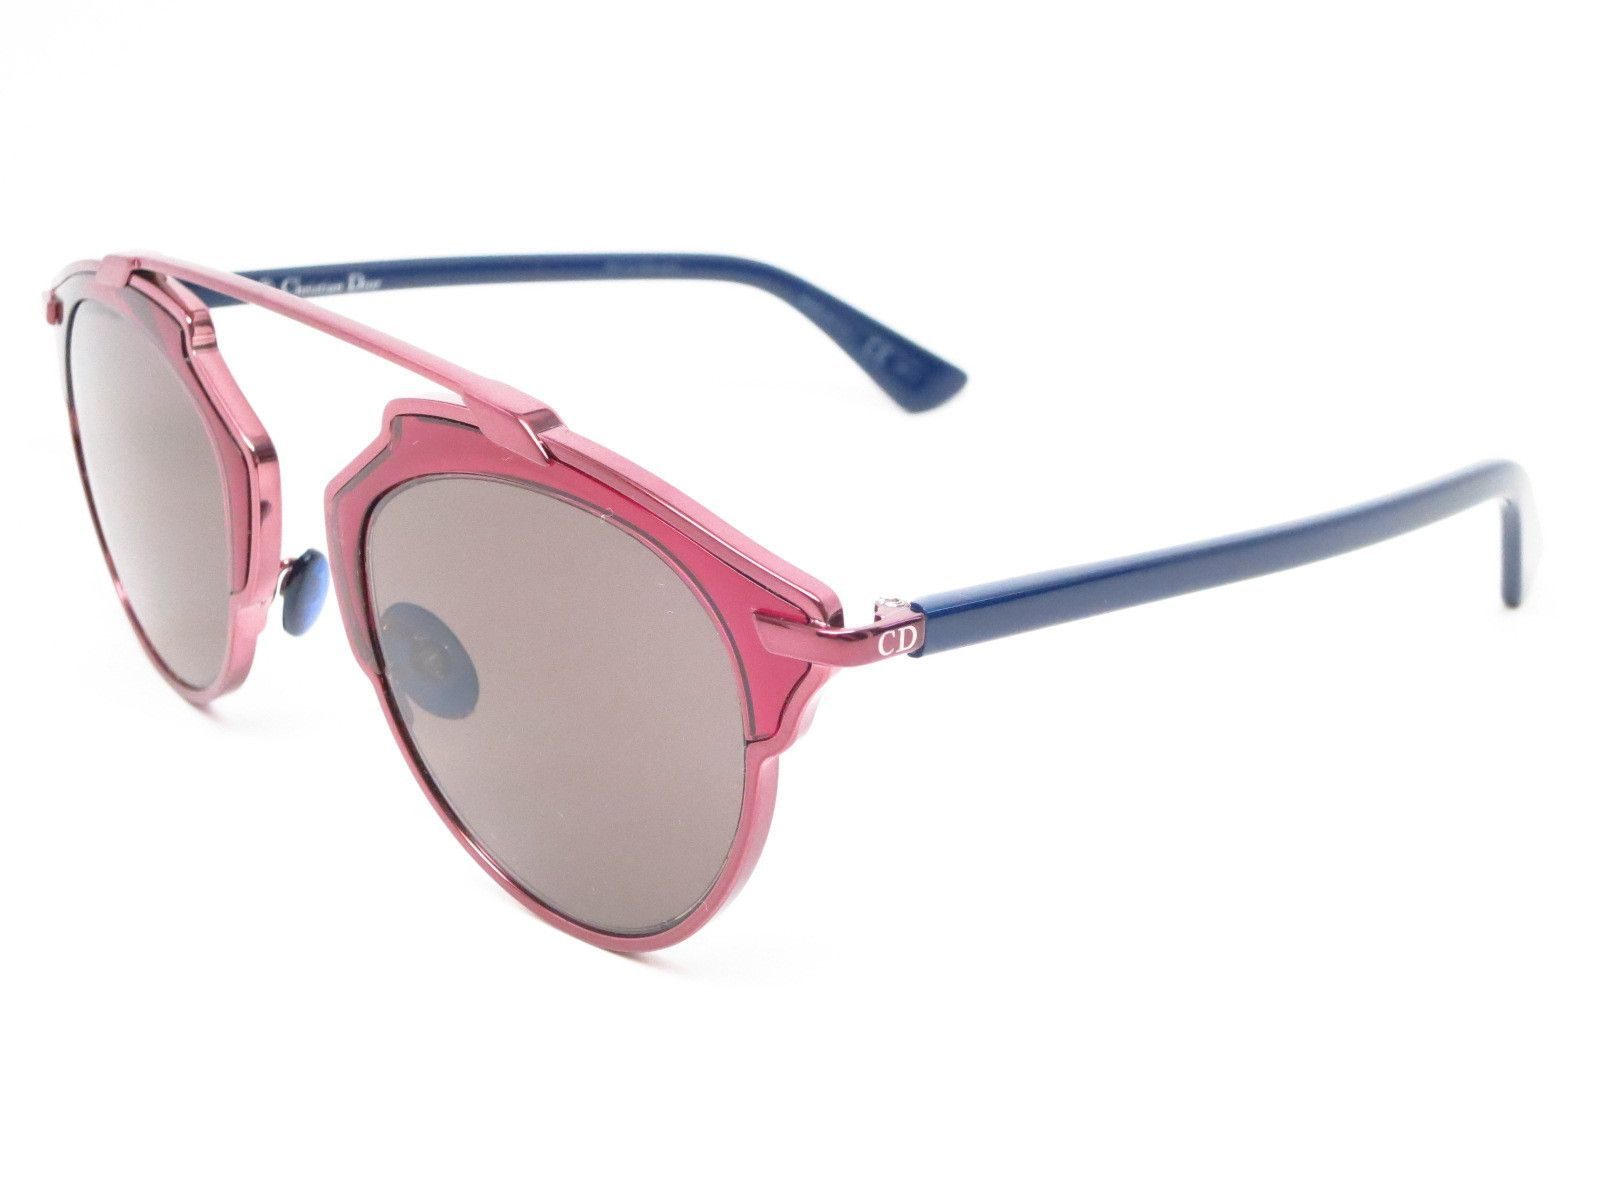 44c8757a2ac Dior So Real Product Details Brand Name   Dior Model Number   So Real -  Color…